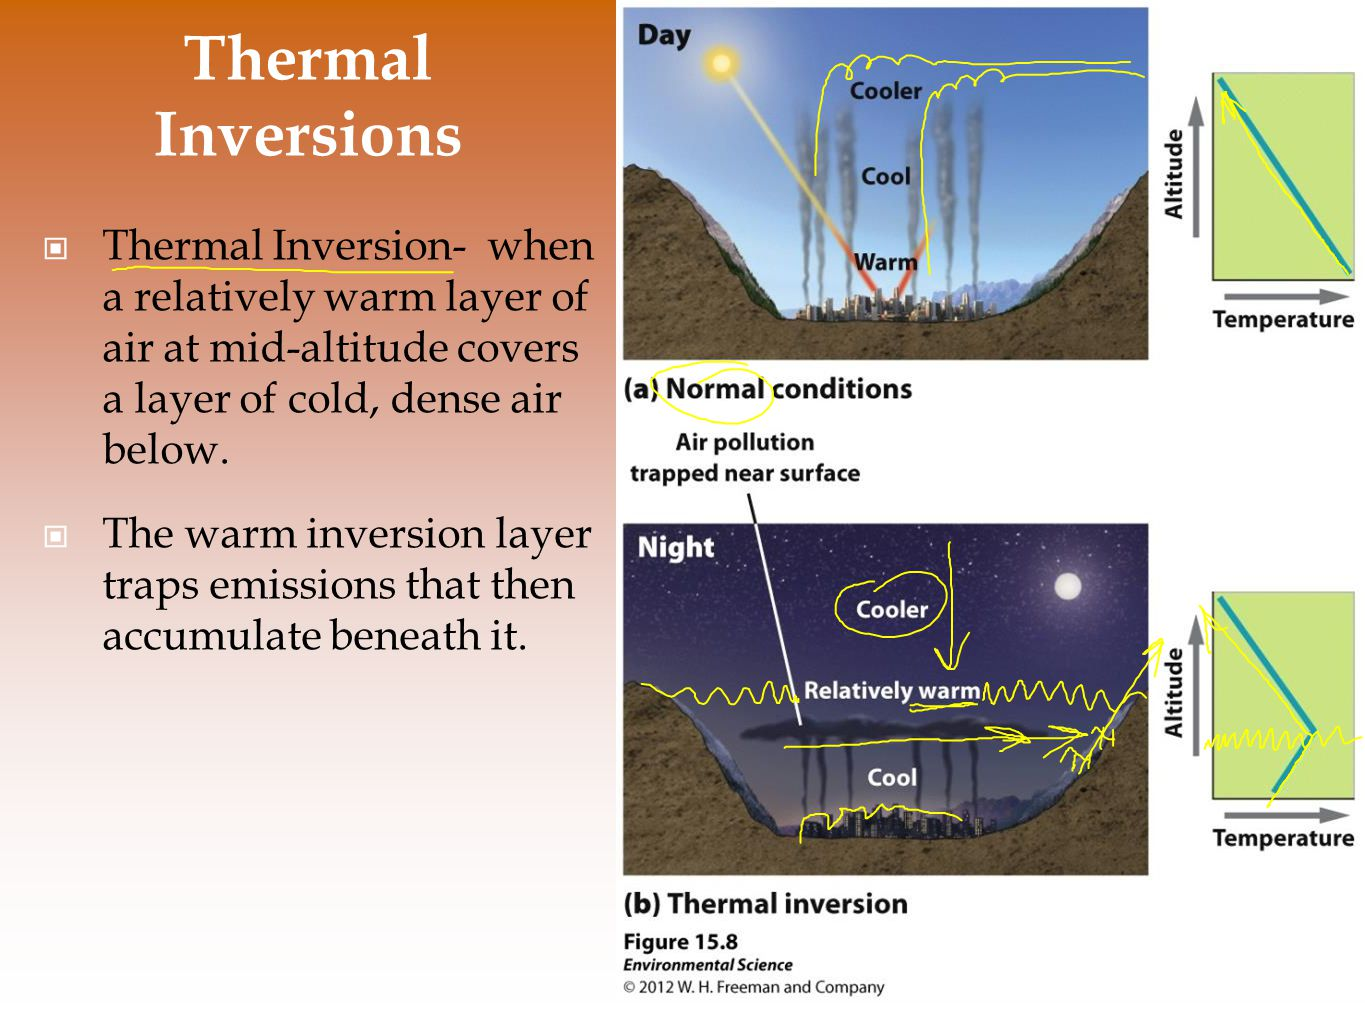 Thermal Inversions Thermal Inversion- when a relatively warm layer of air at mid-altitude covers a layer of cold, dense air below.